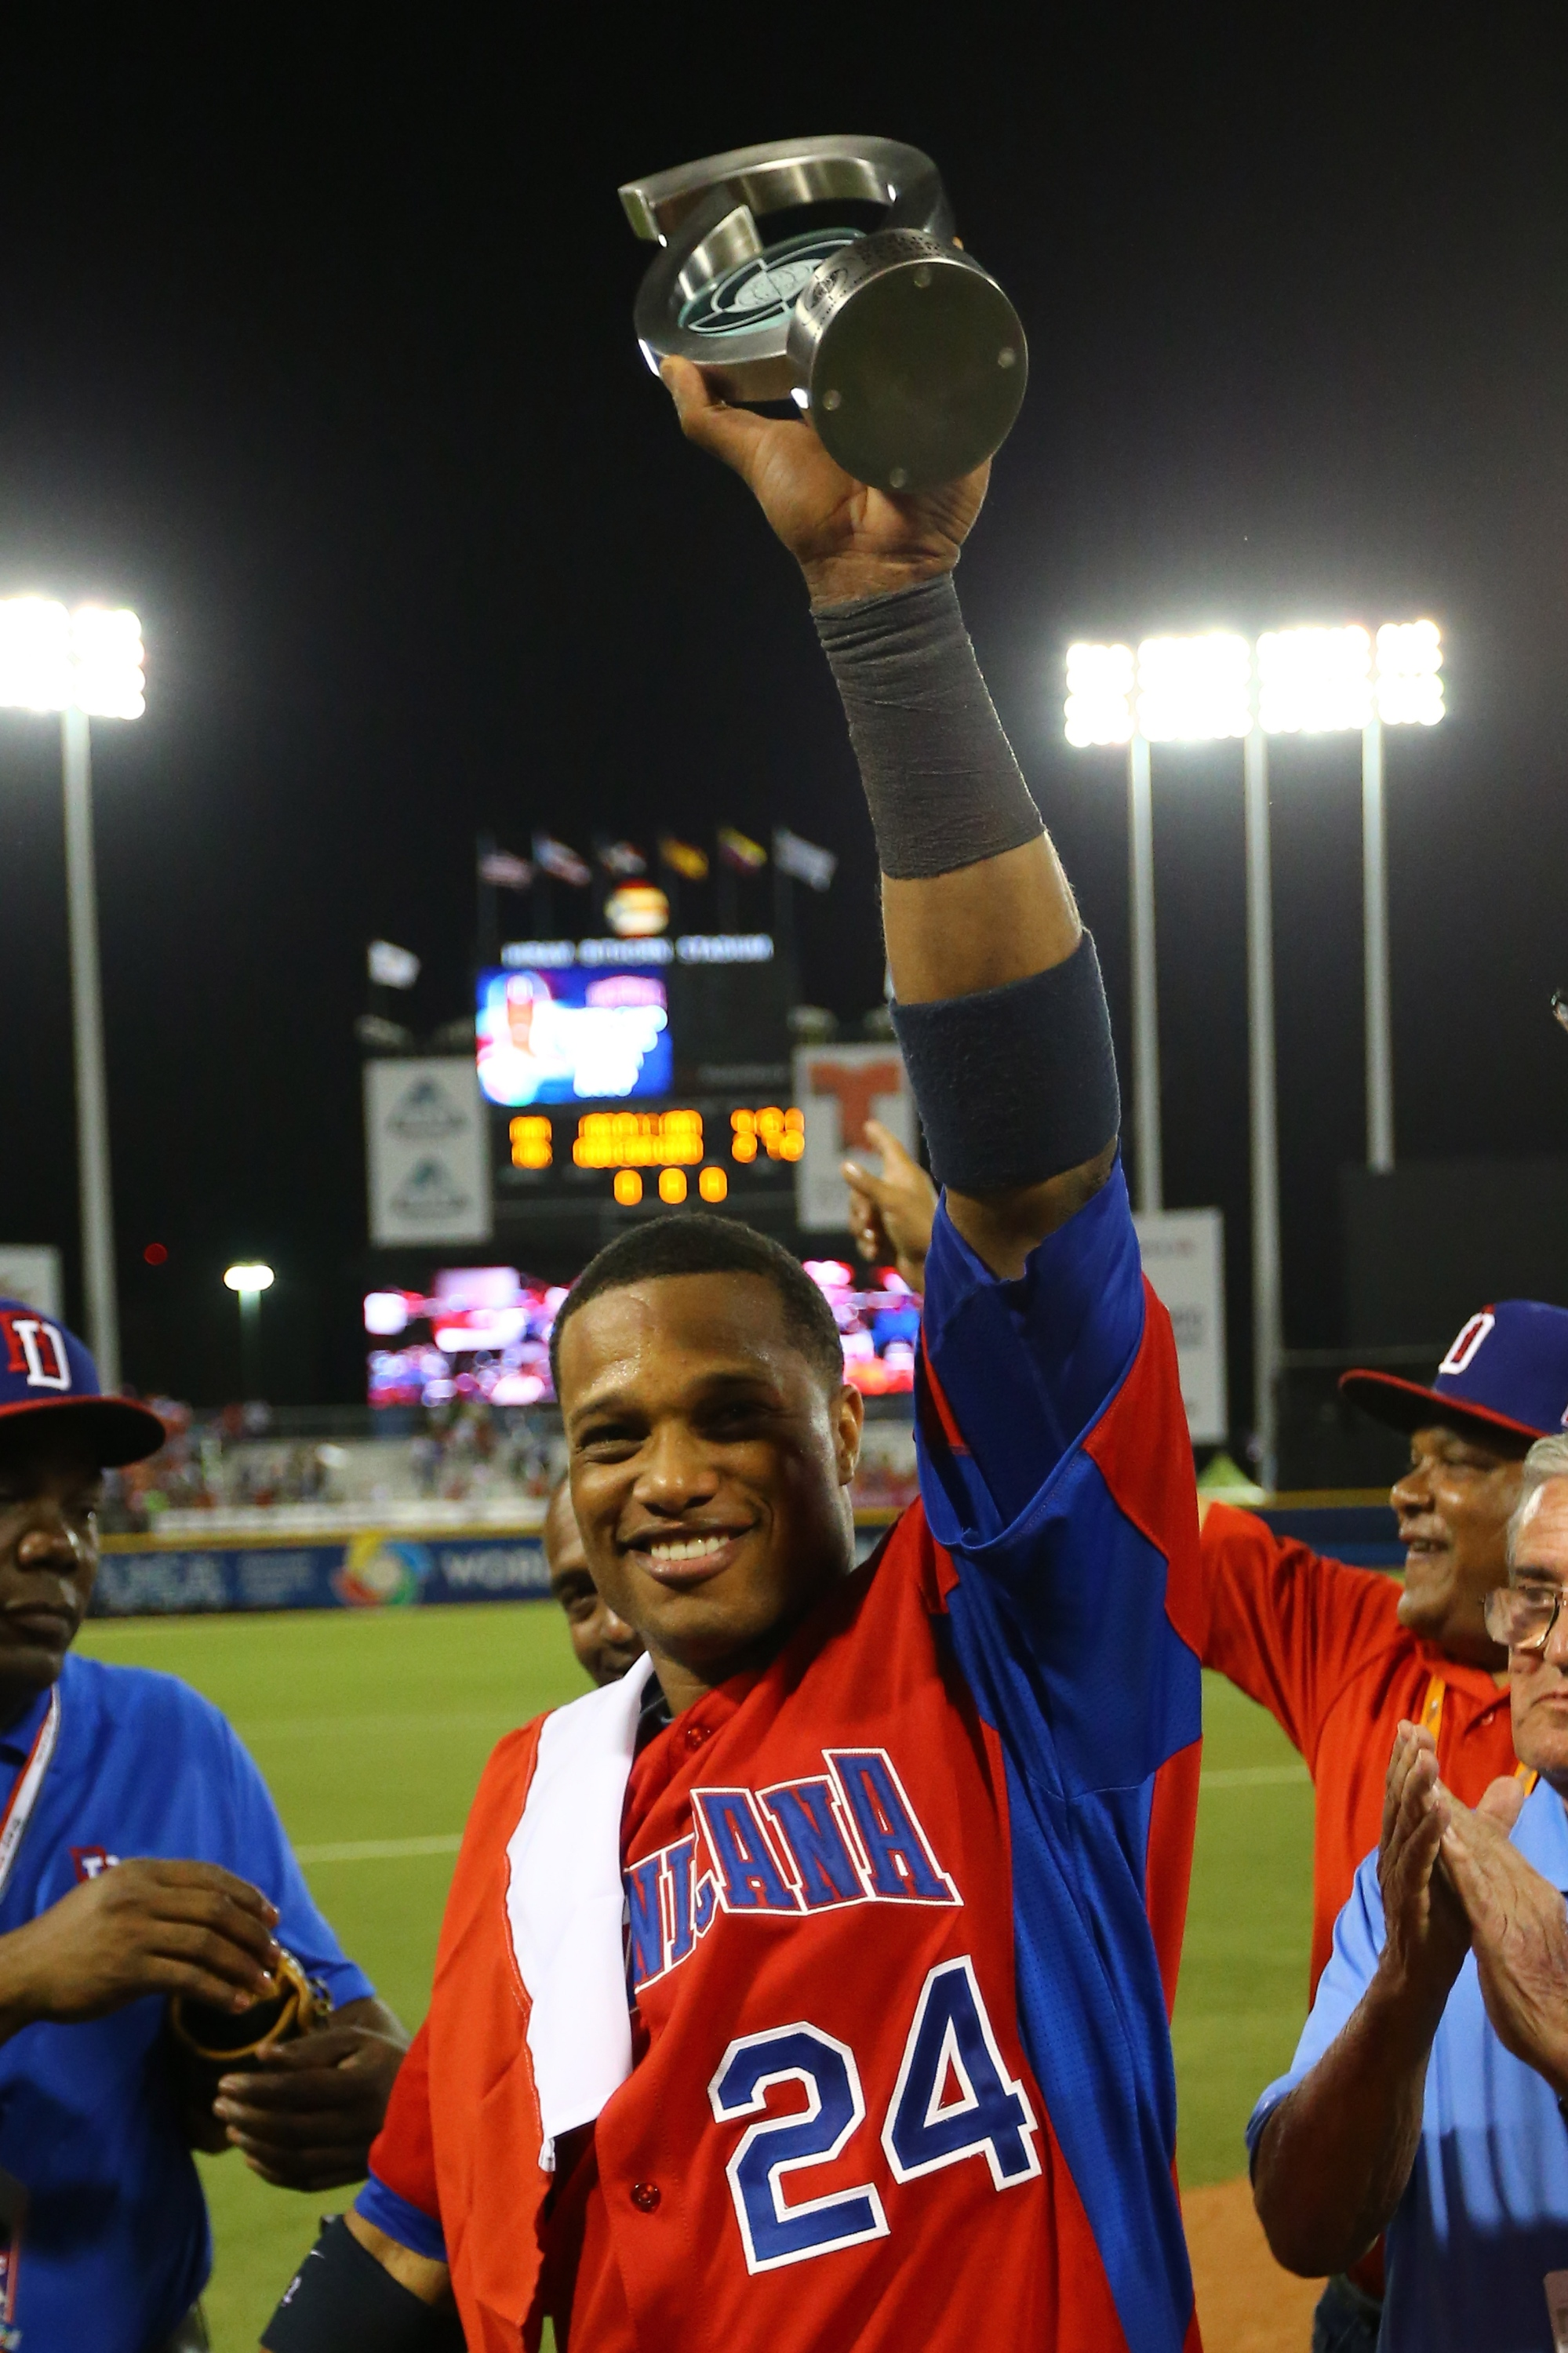 Robinson Cano helped the Dominican Republic go 3-0 in pool play. (Getty Images)